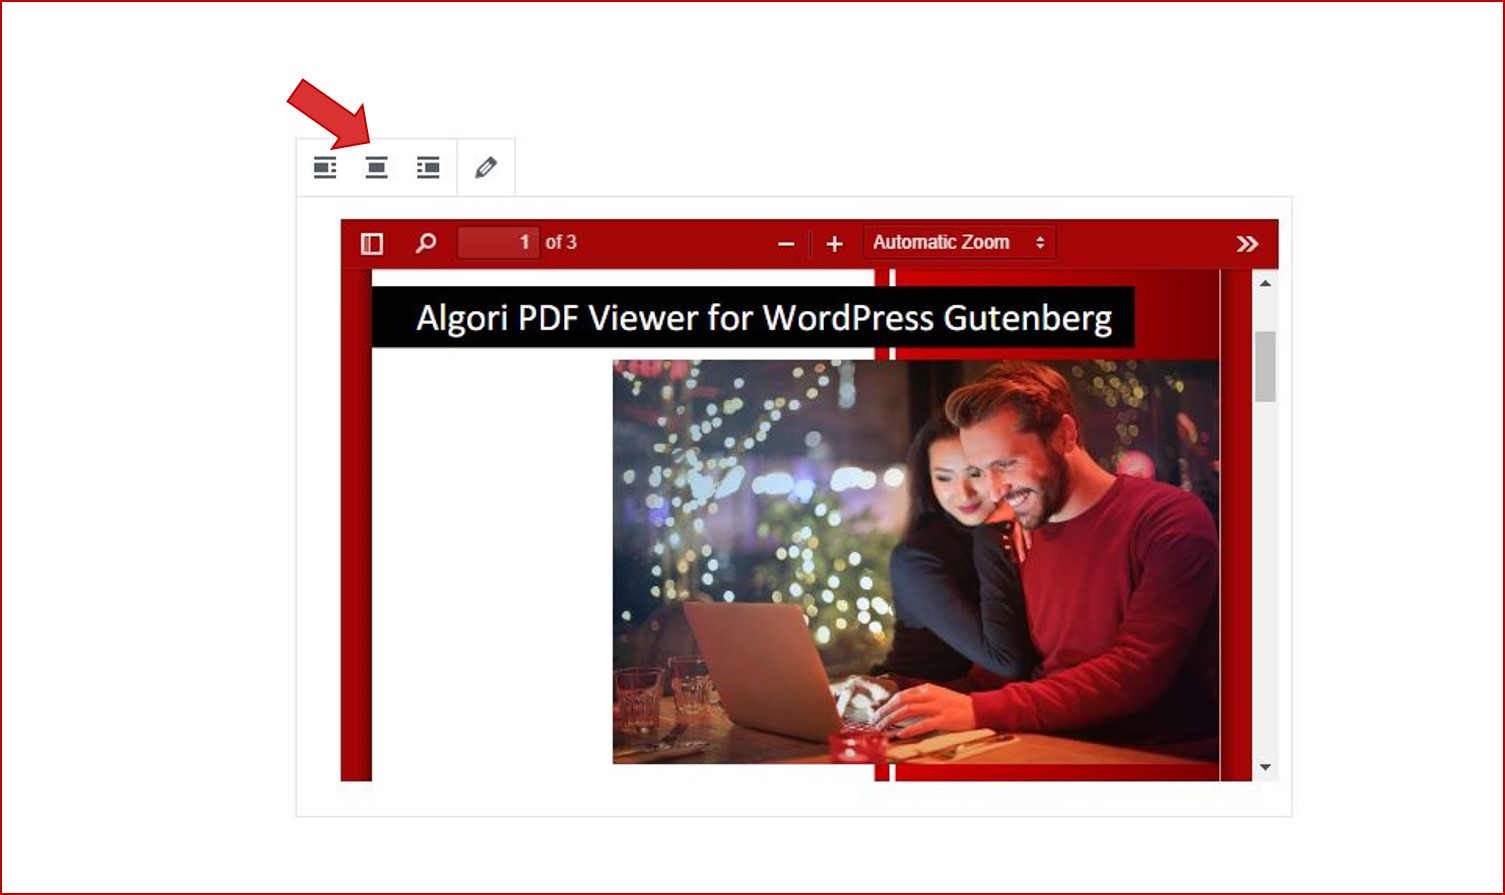 Algori PDF Viewer Pro for WordPress Gutenberg | Kevin Bazira